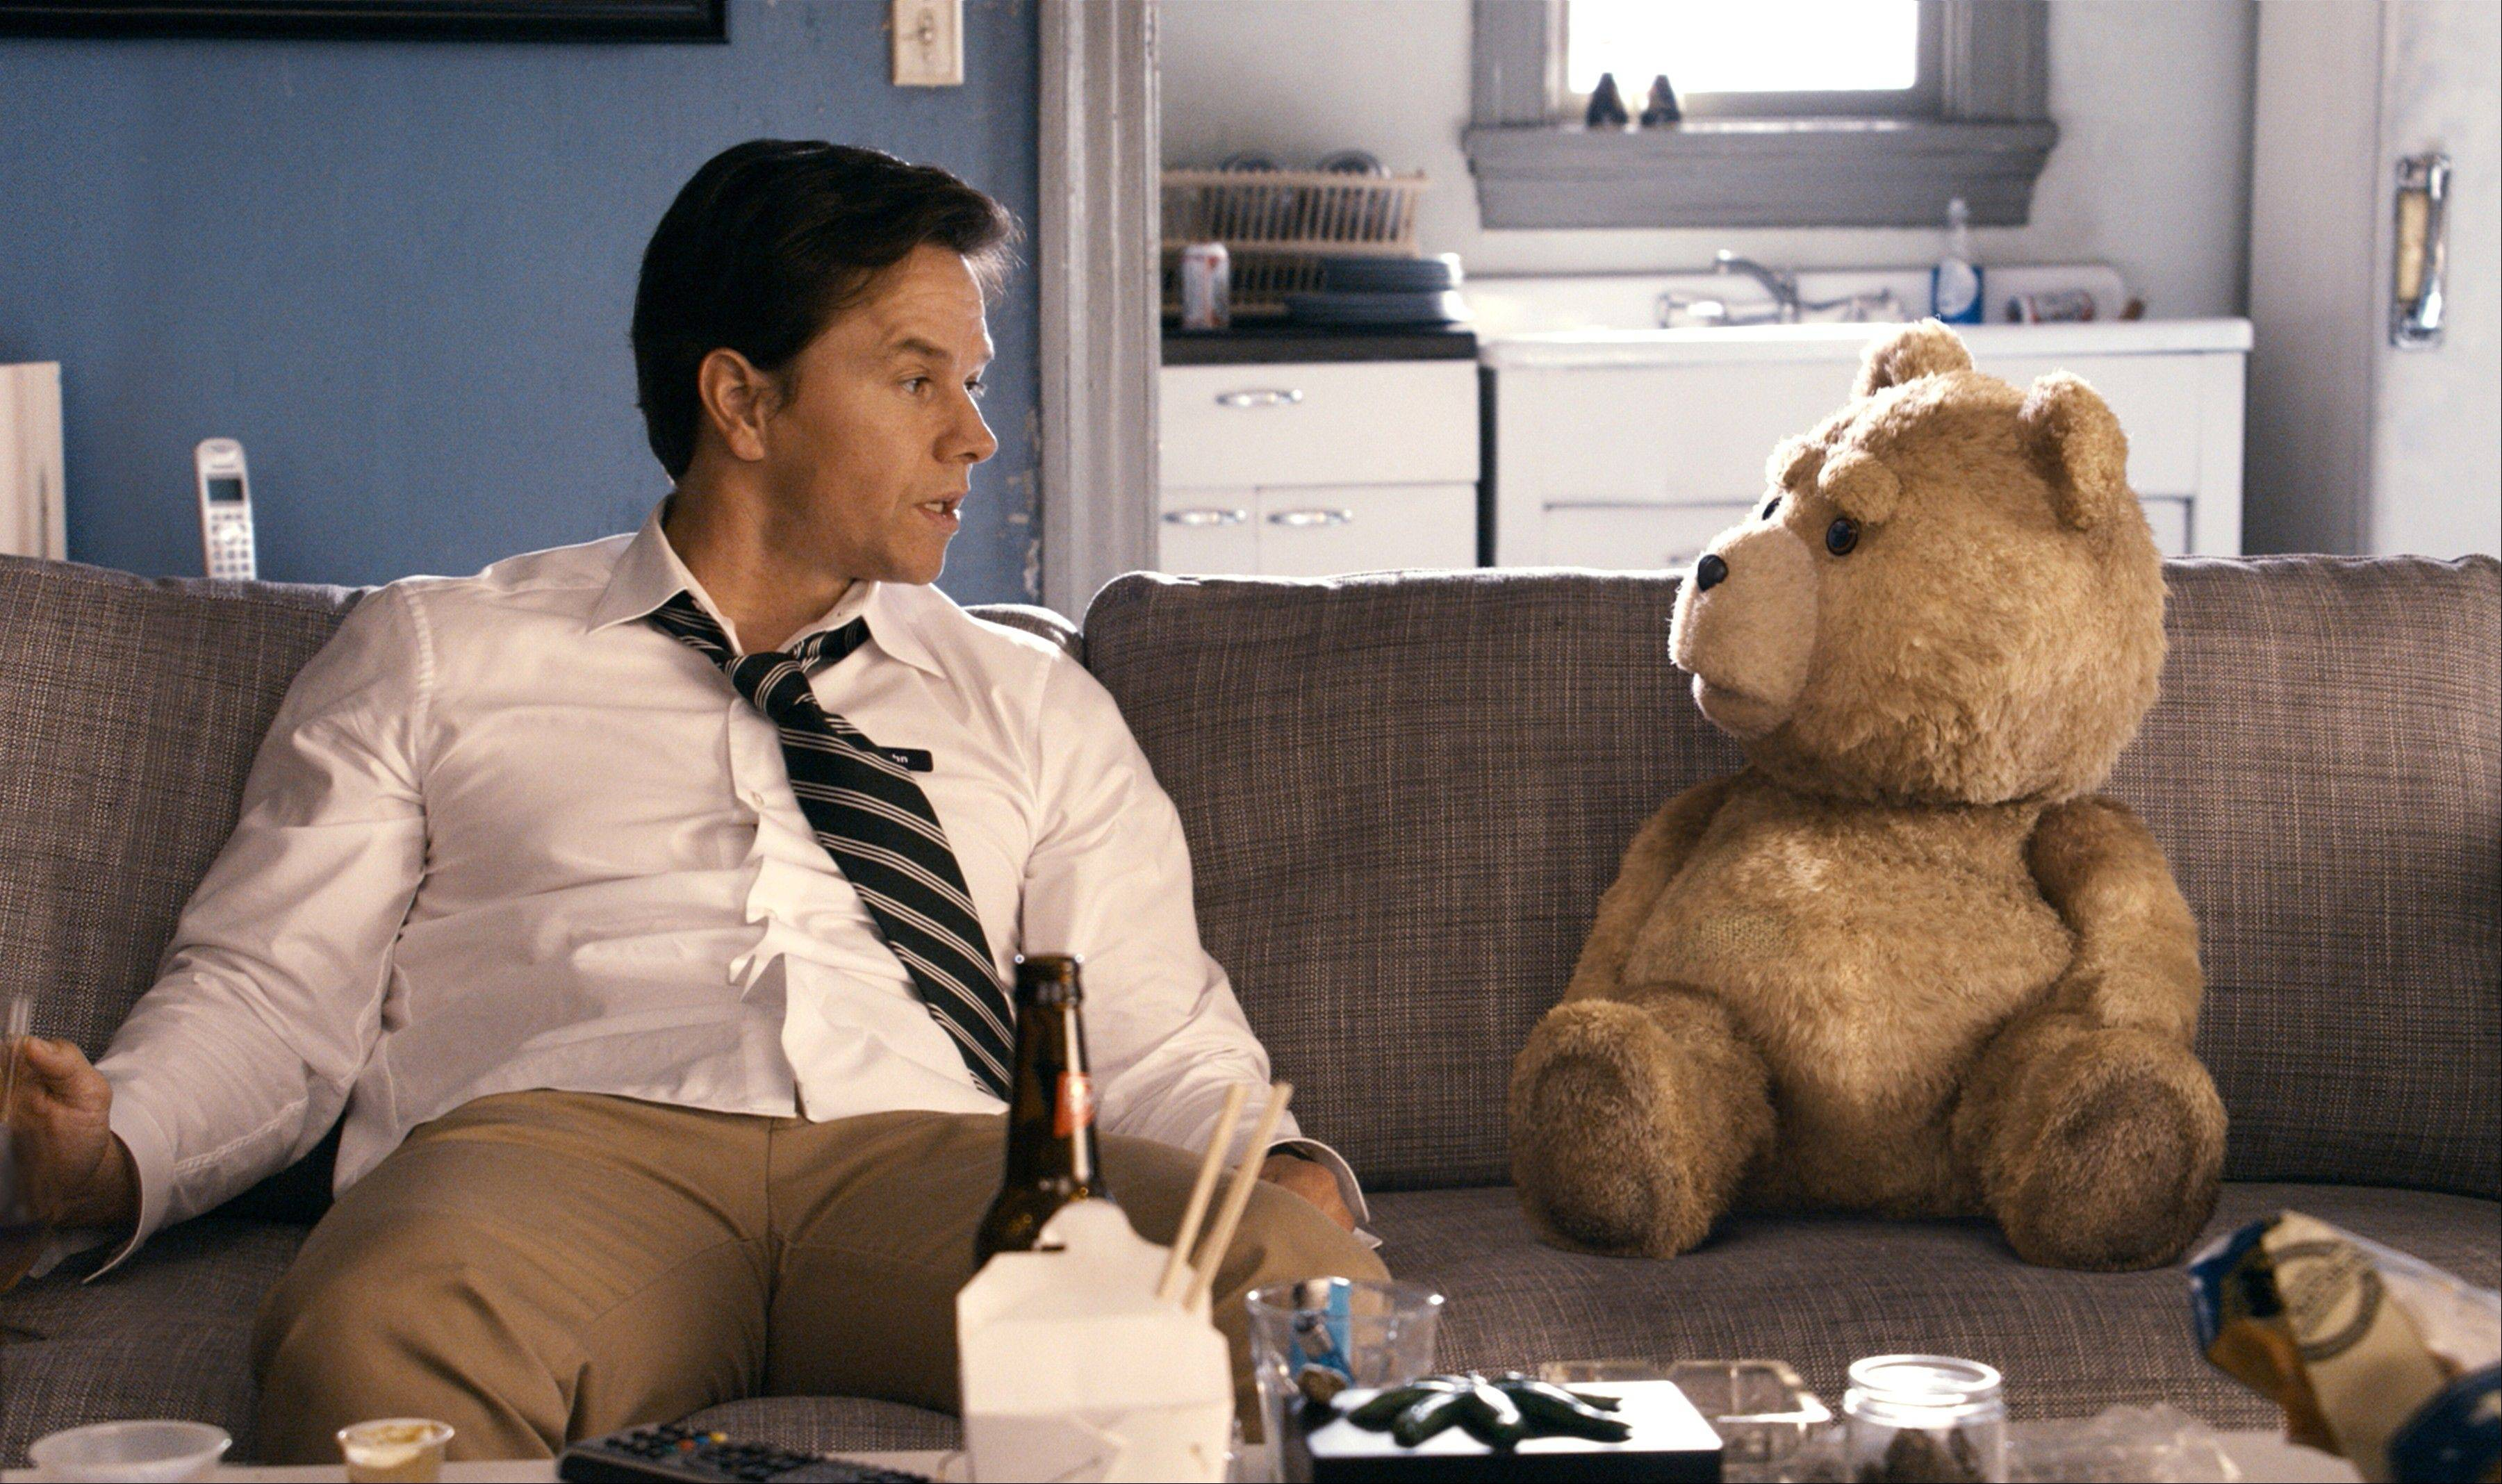 A decade ago there might have been some resemblance between actor Mark Wahlberg and columnist Burt Constable. Now Burt just wants to avoid being mistaken for Ted, the foul-mouthed bear.